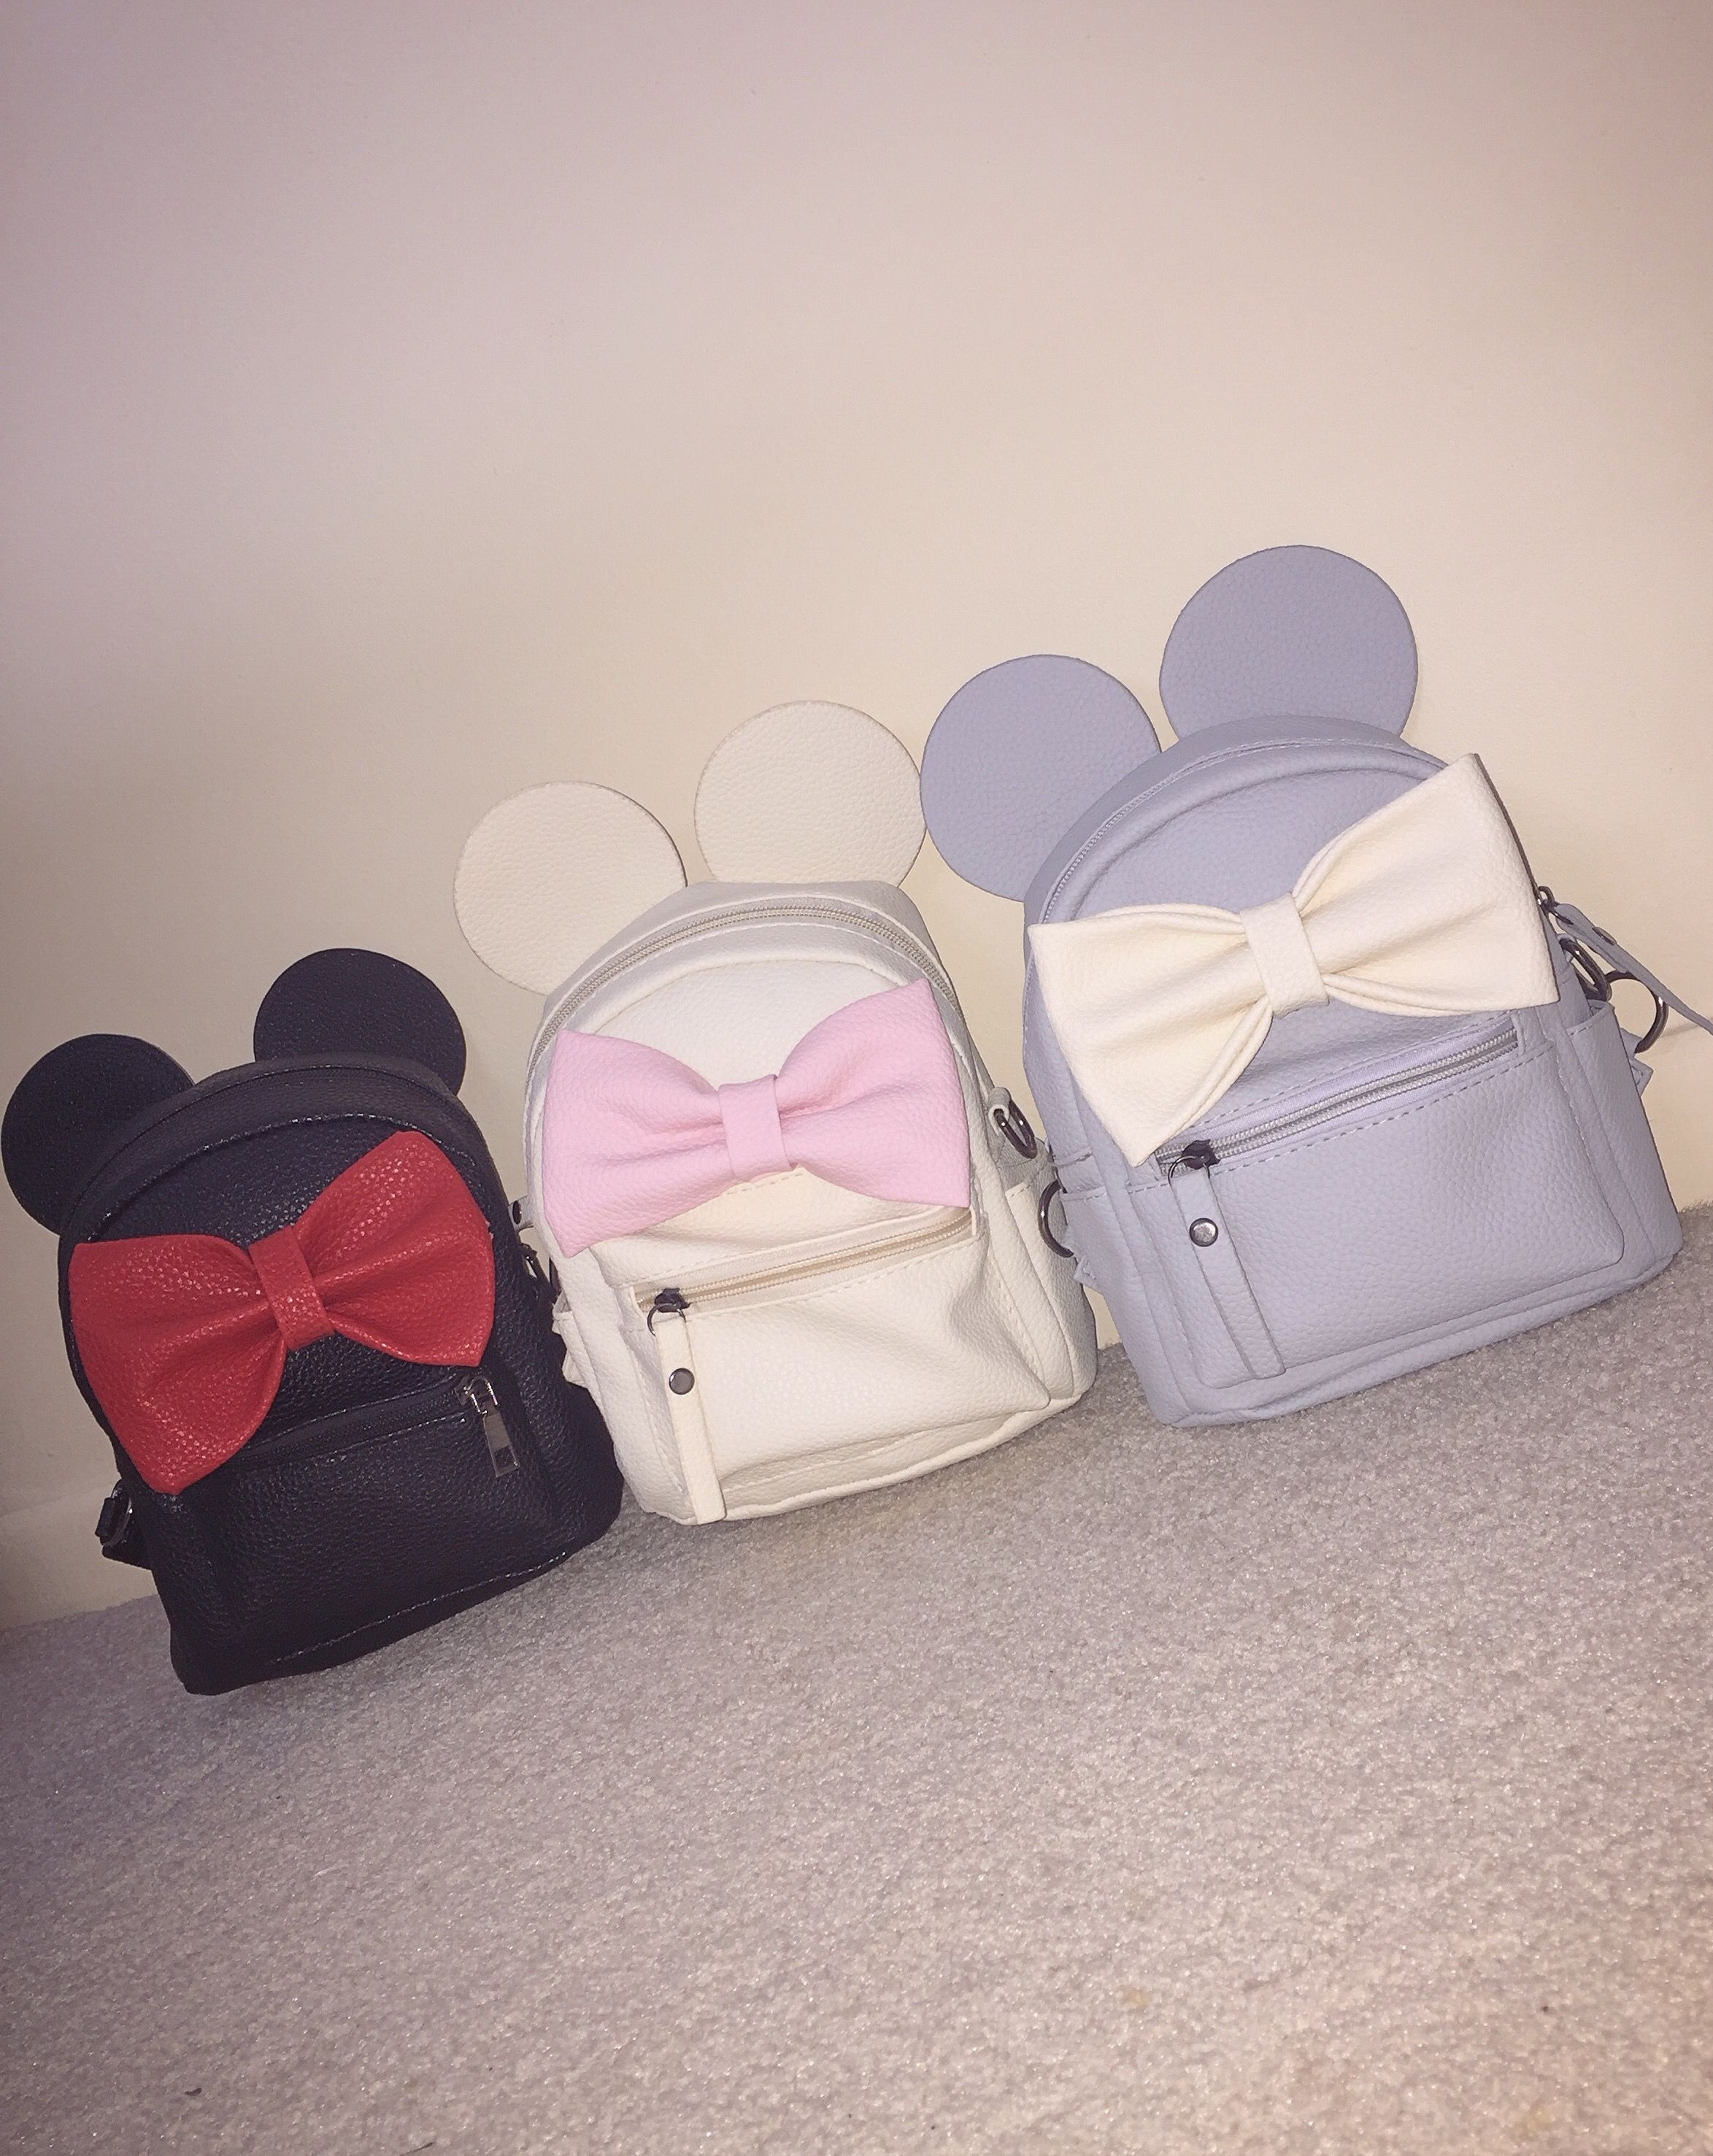 Matching Minnie Mouse backpacks for myself and two of my best